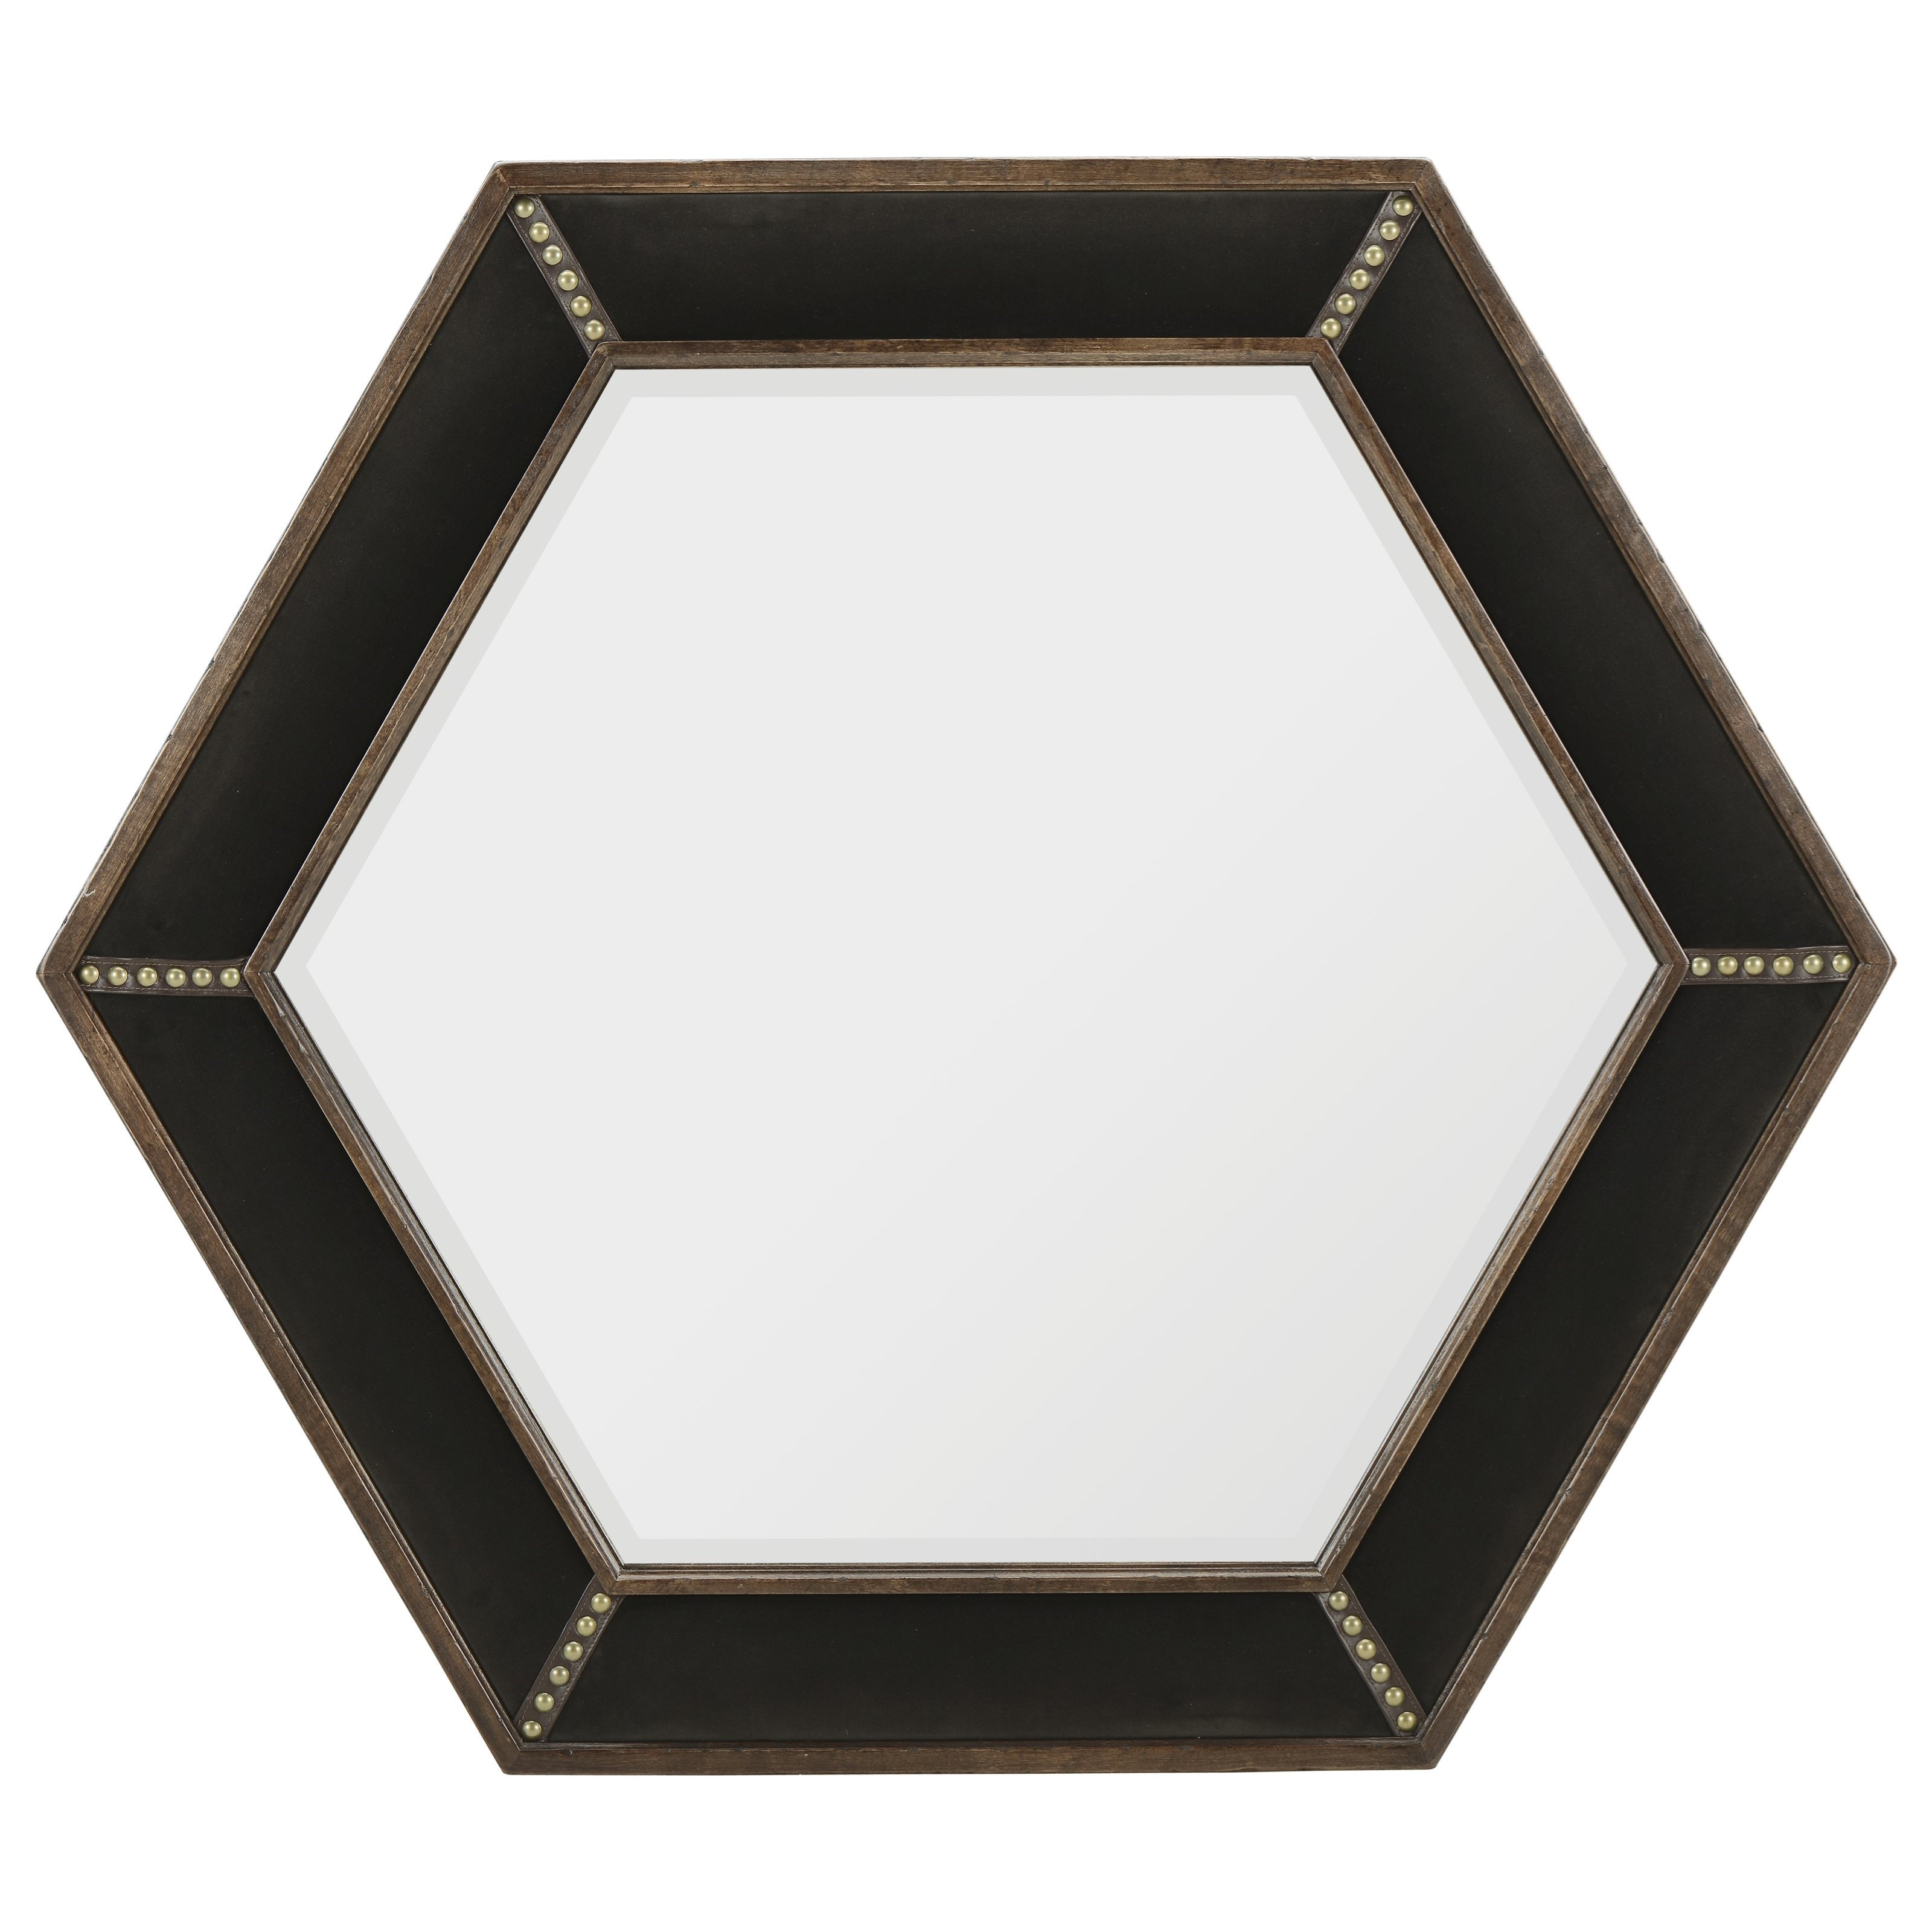 American Chapter Steeplecase Mirror by A.R.T. Furniture Inc at Home Collections Furniture